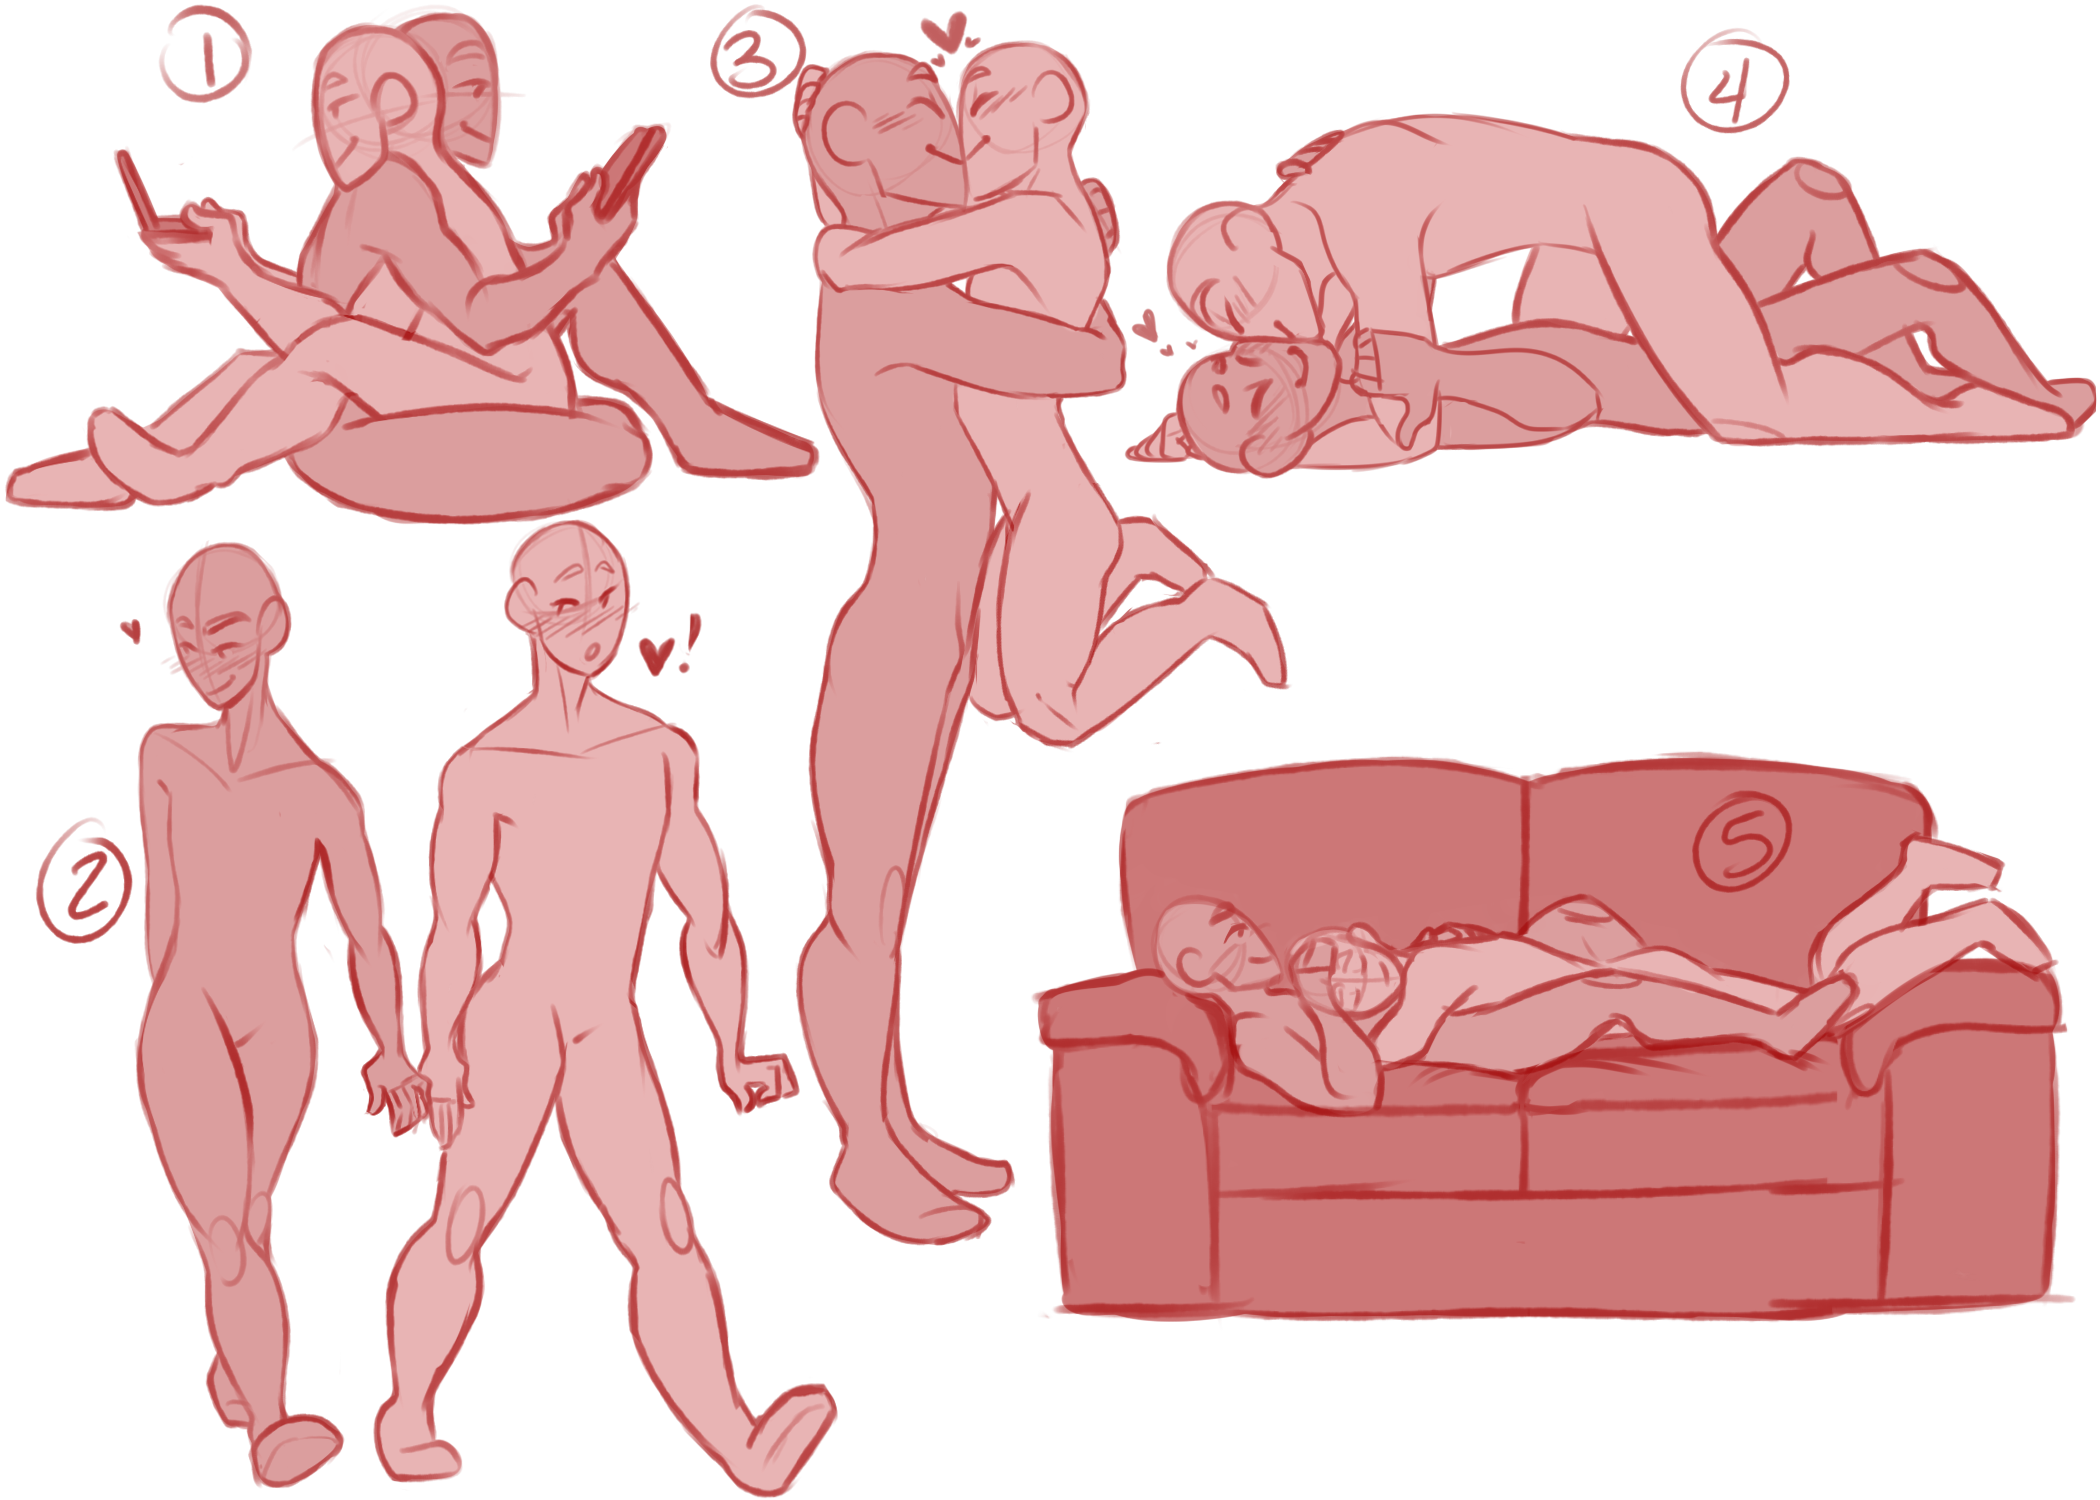 Drawing bed couple. Image result for couples